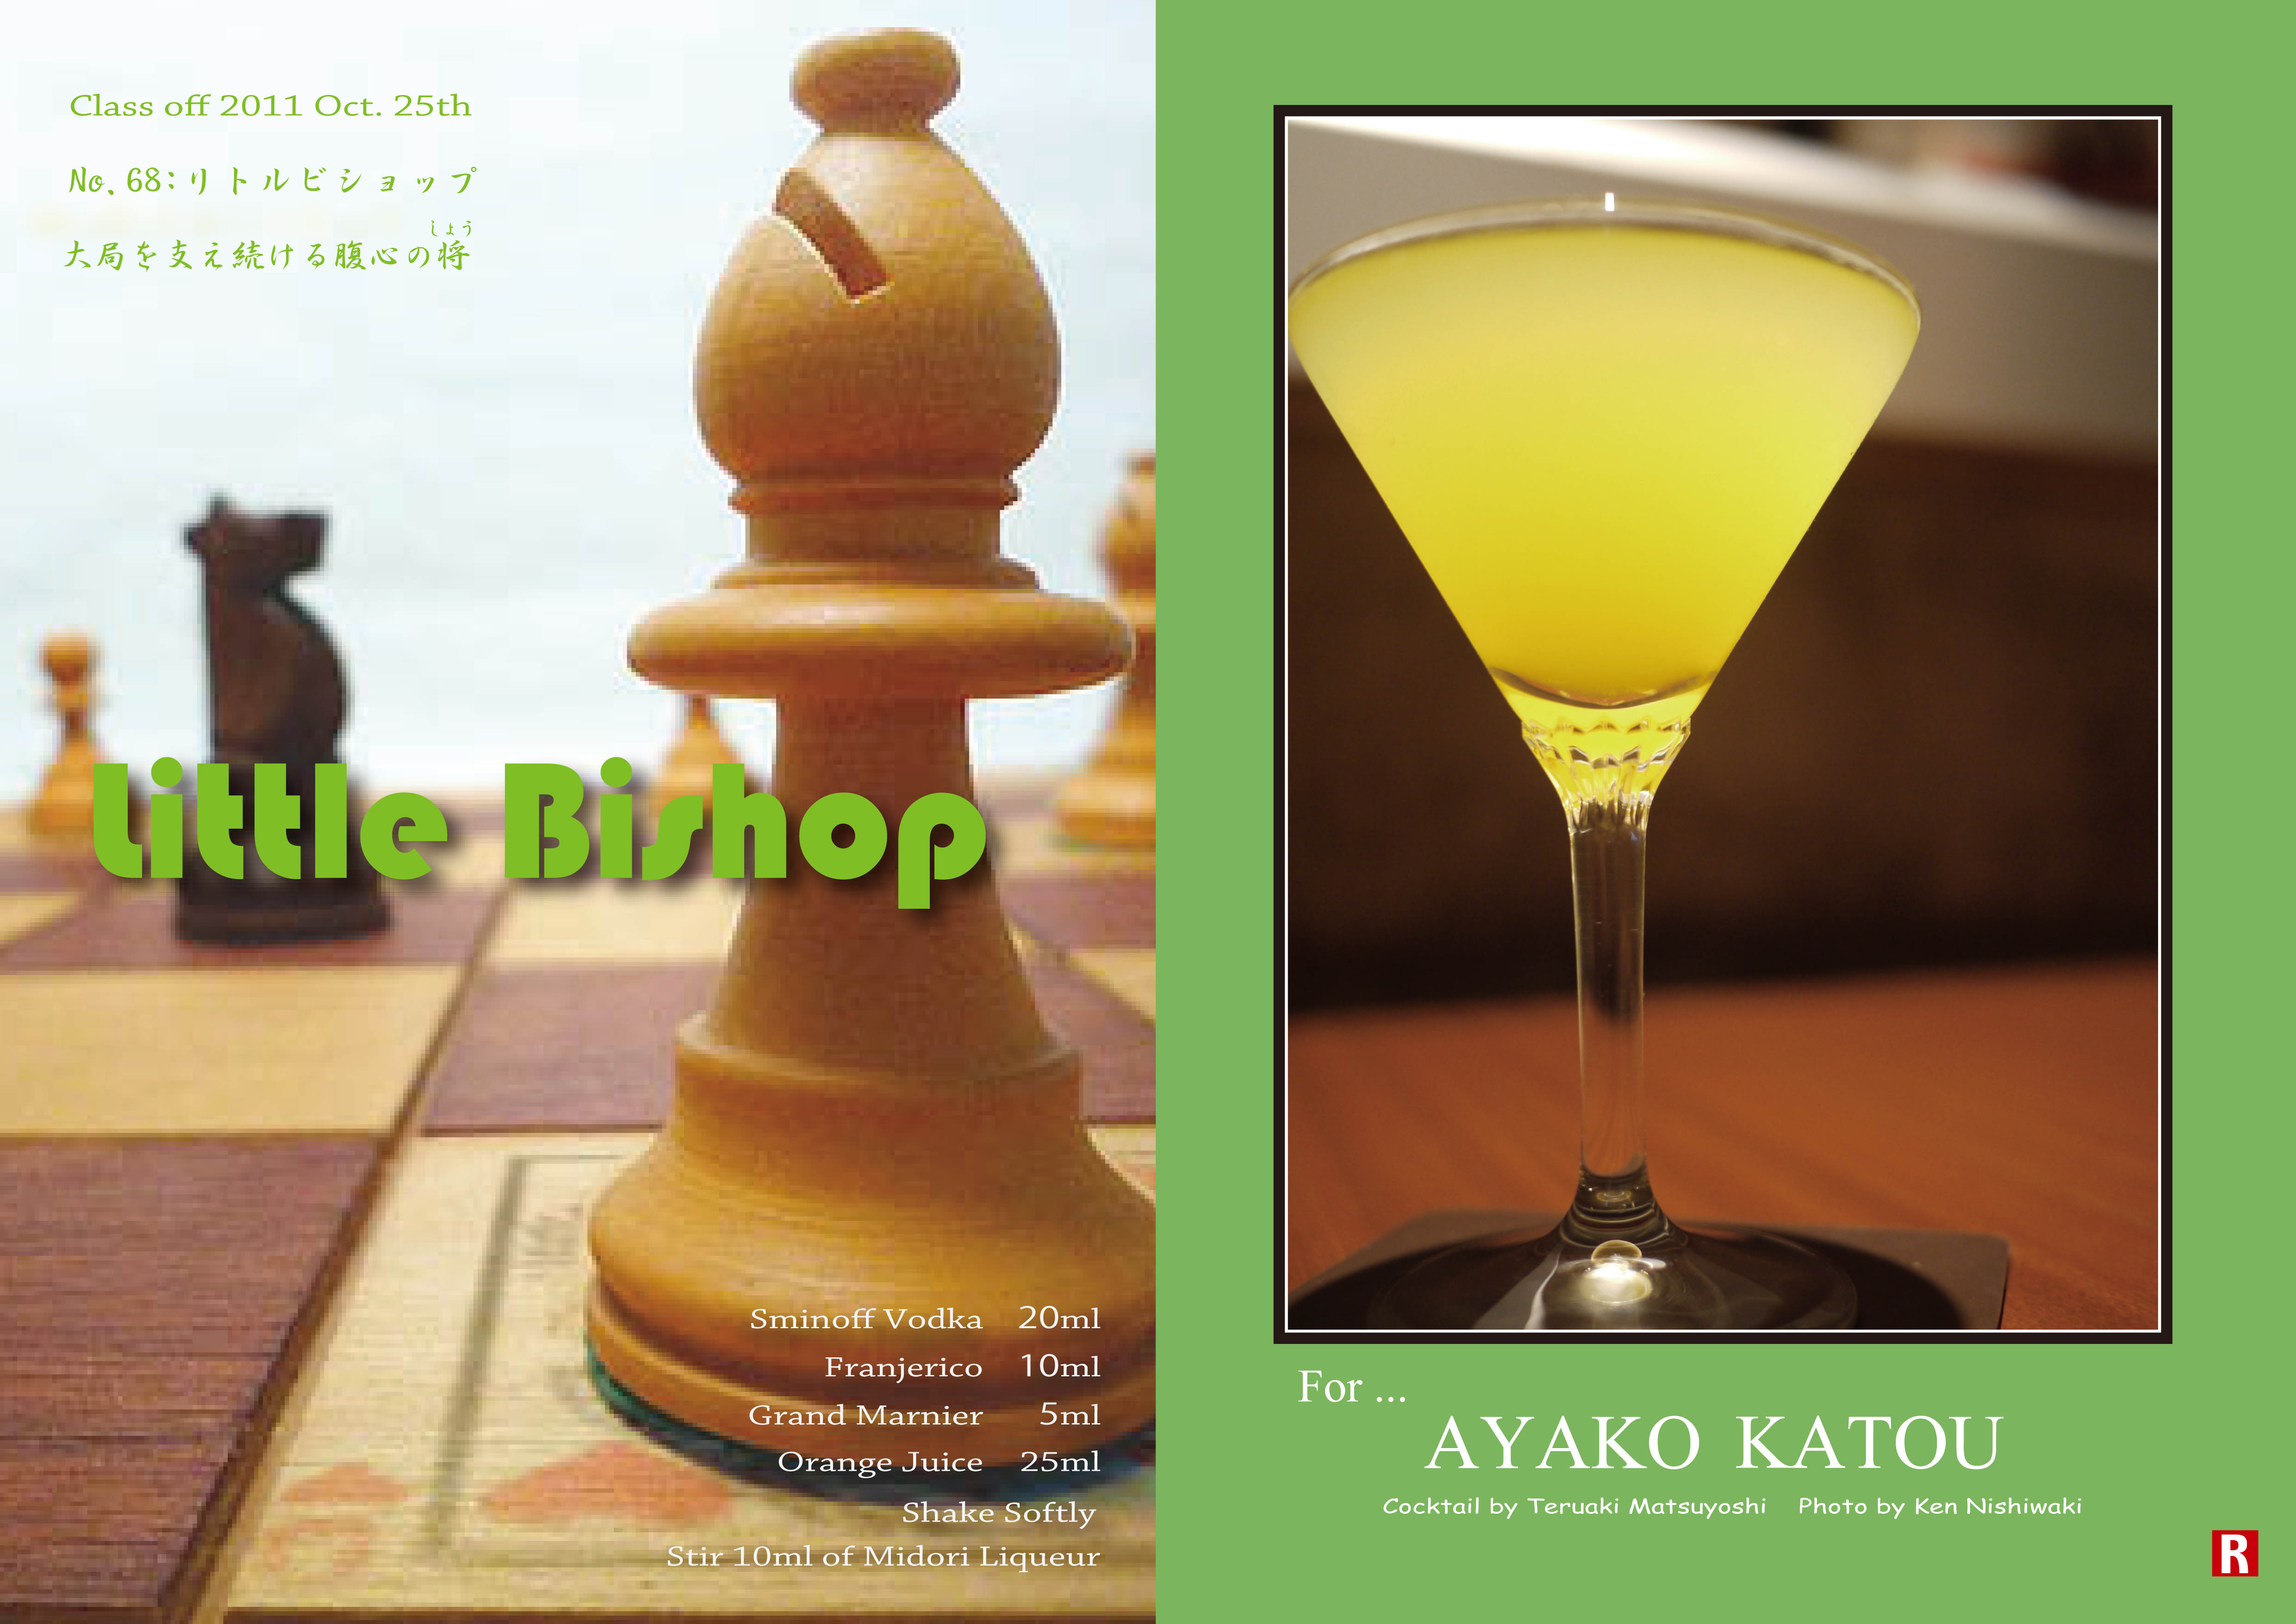 201110Ayako-Katou_Little-Bishop